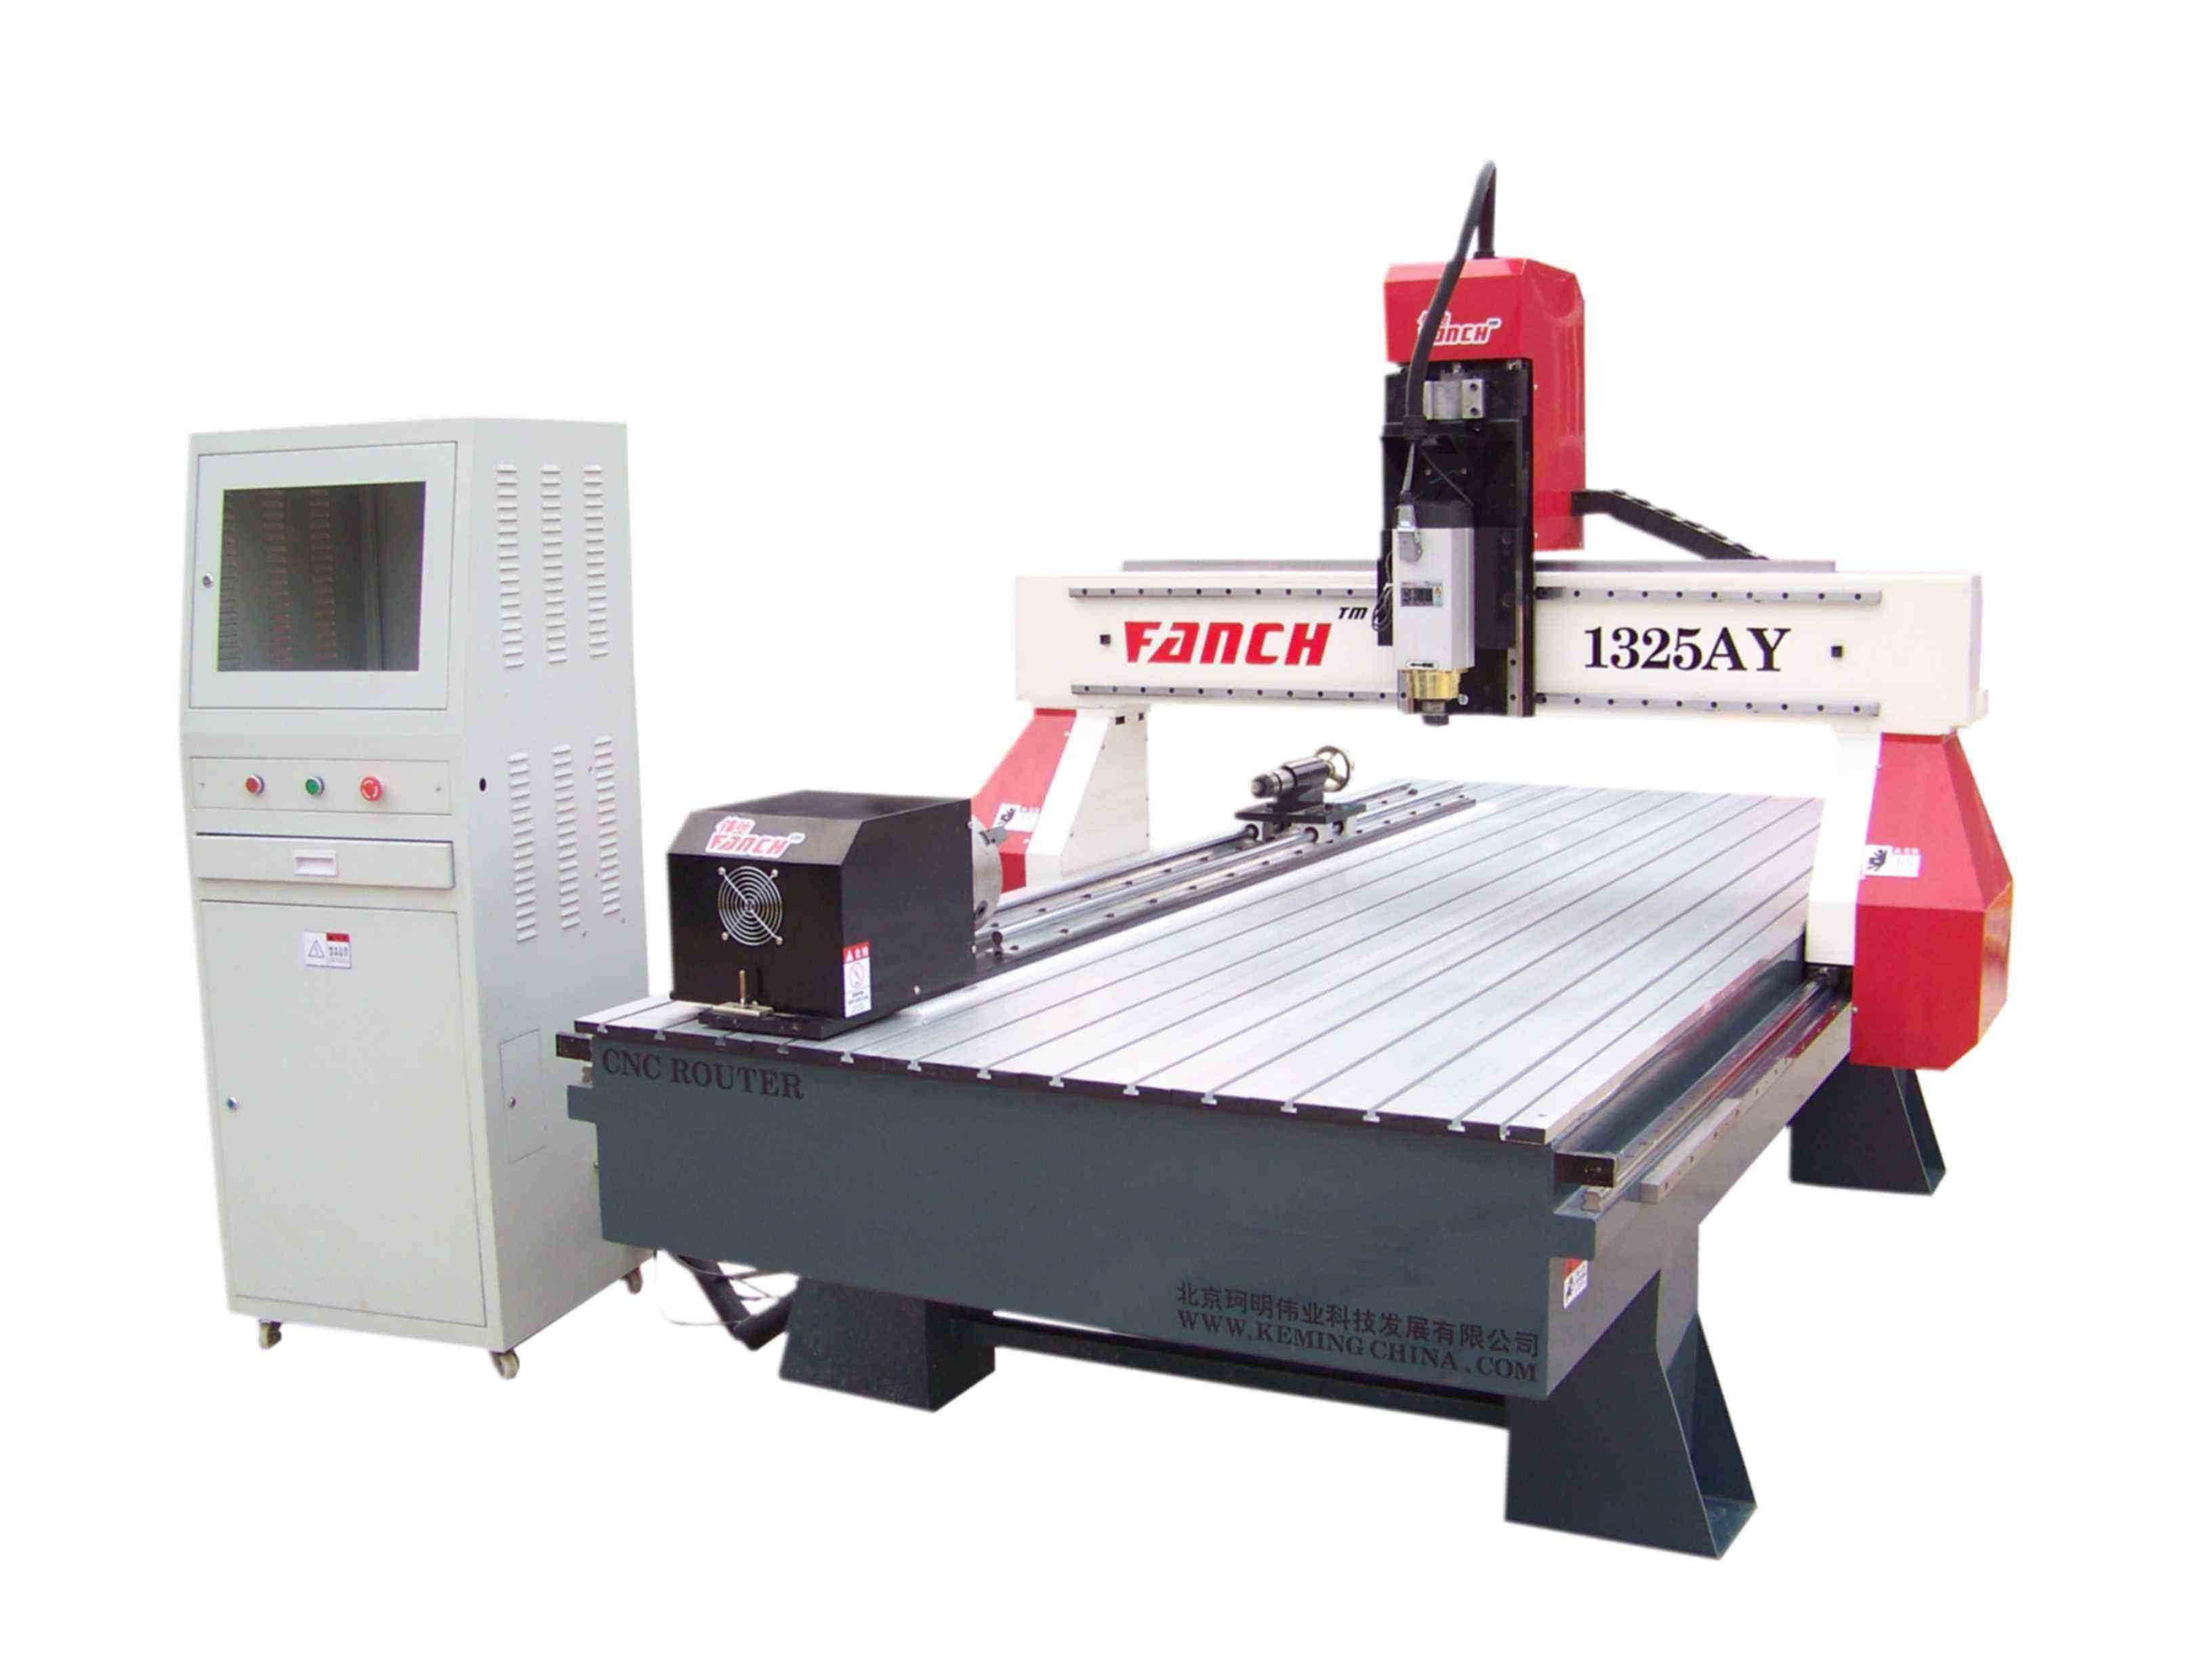 Woodworking CNC Router (1325AY) - China Woodworking Cnc Router, Cnc ...